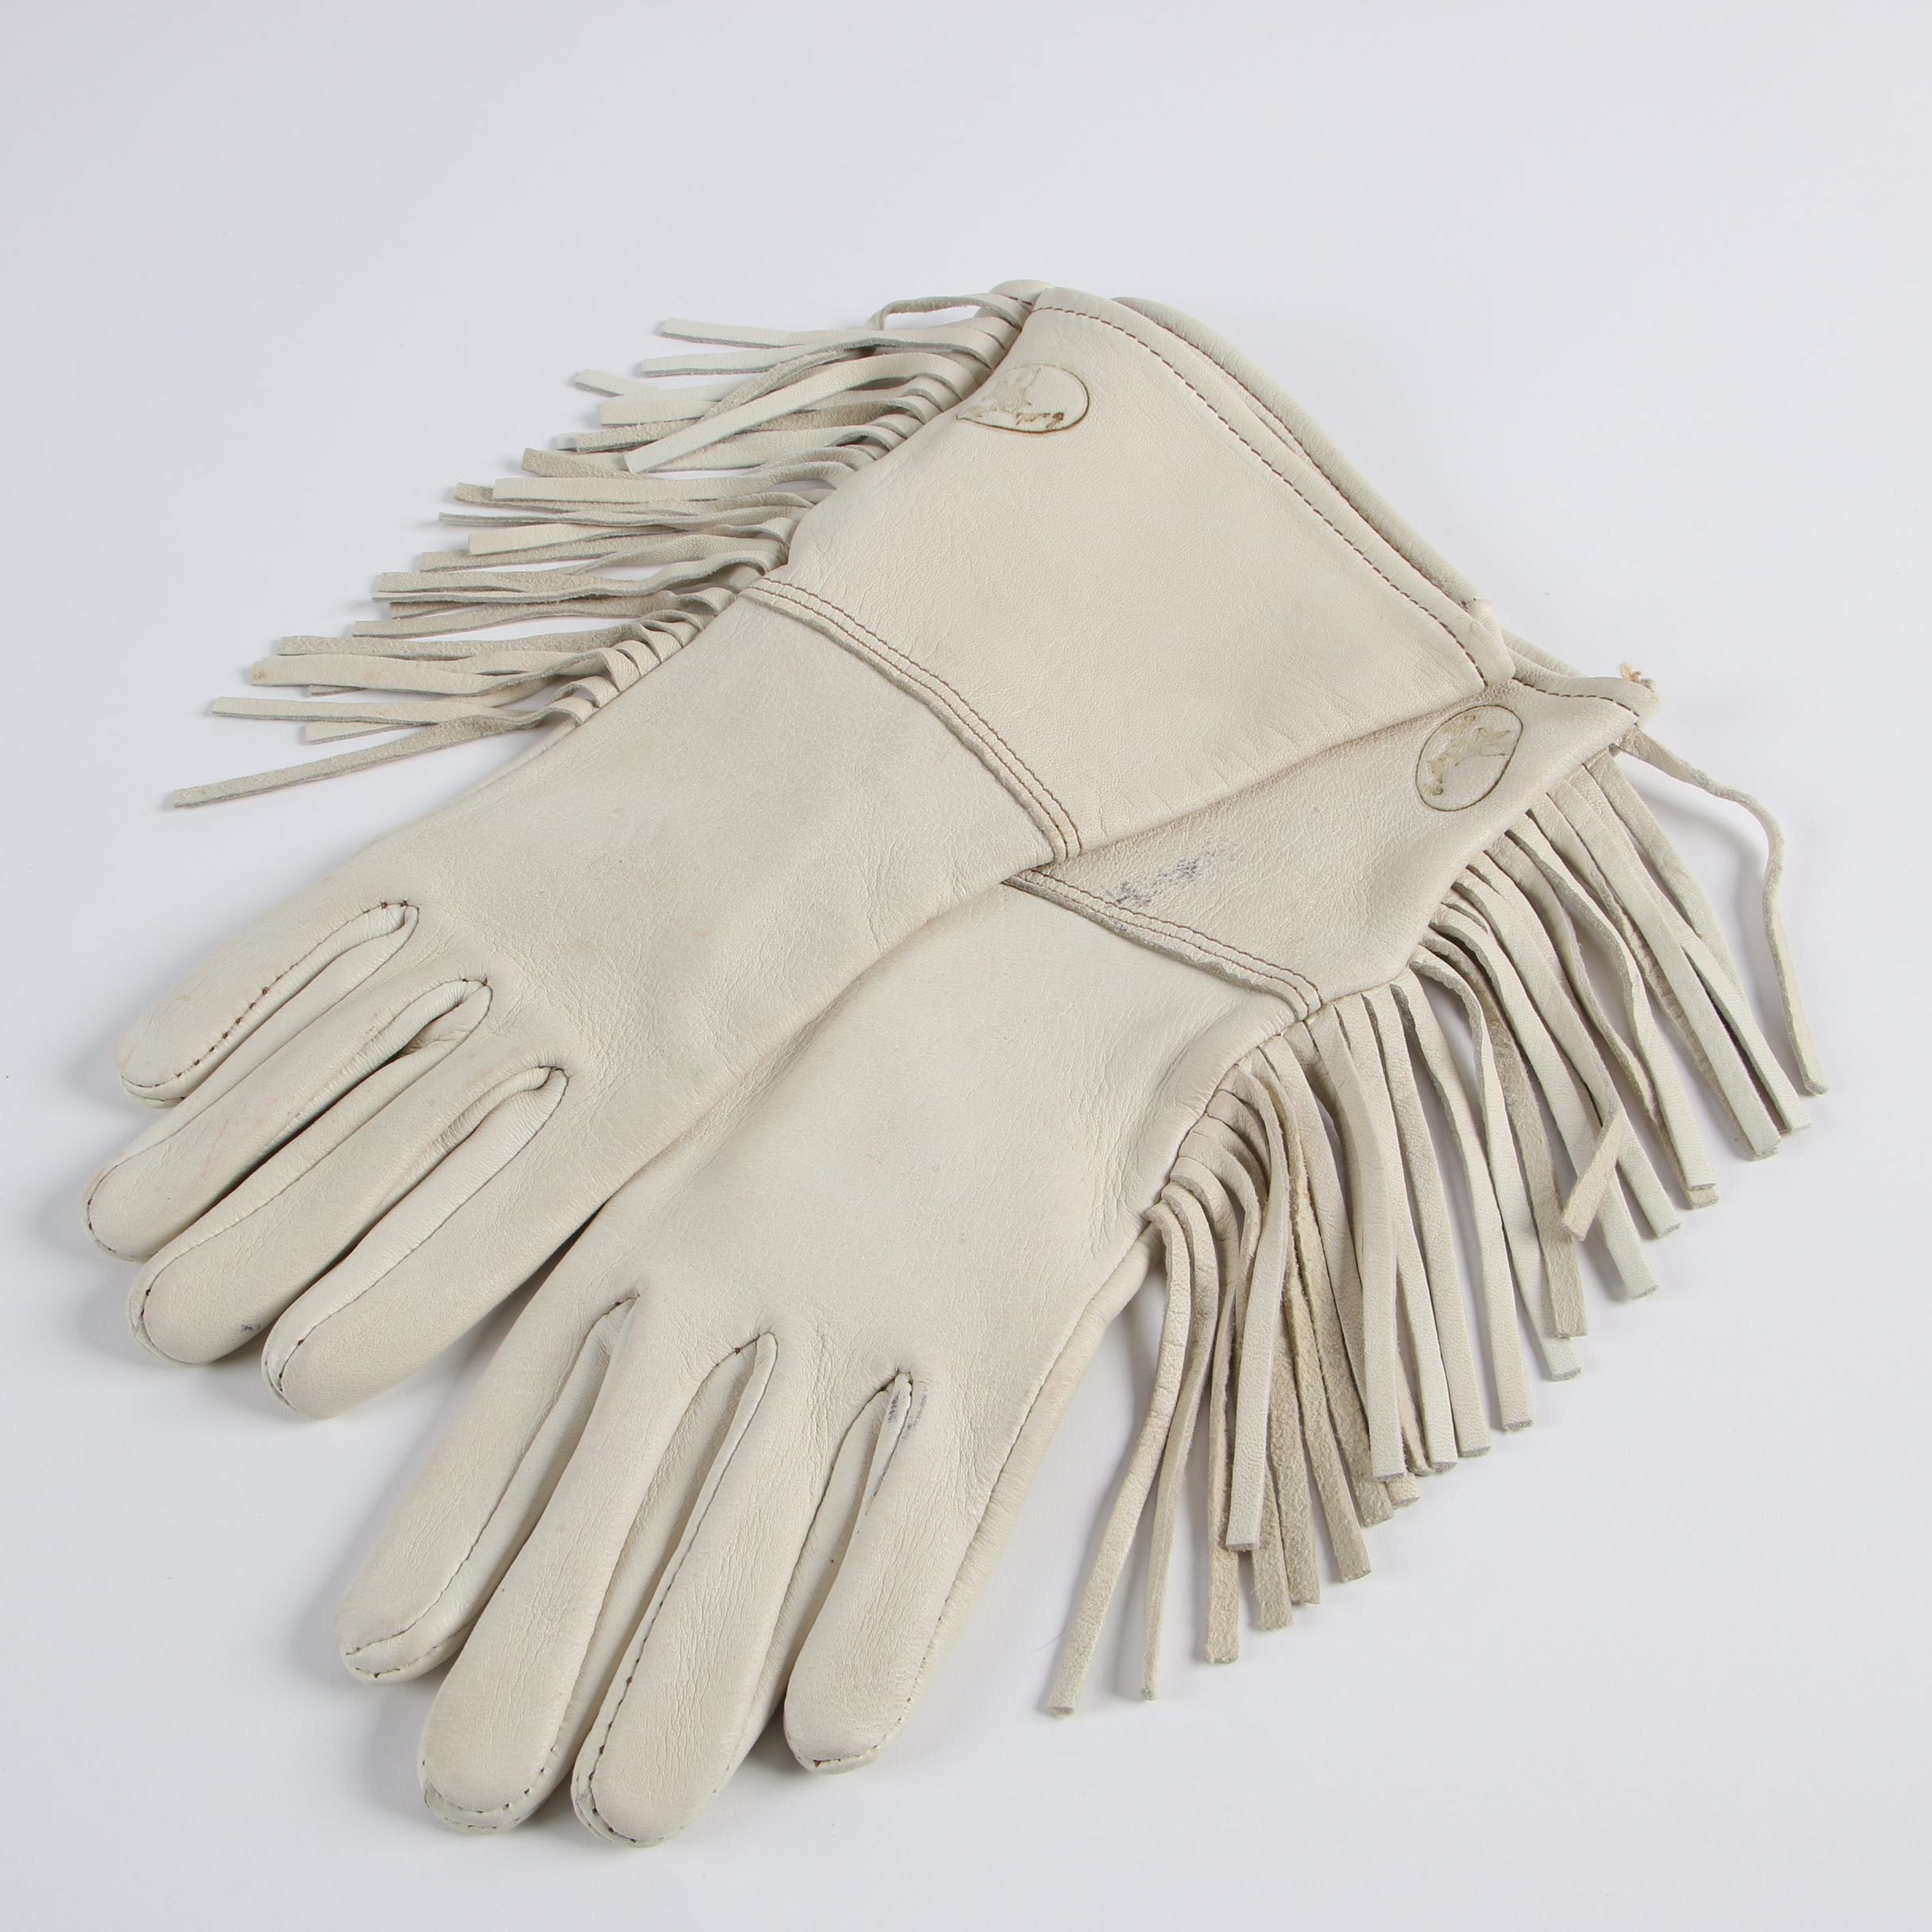 Women's Cattle Kate Off-White Leather Riding Gloves with Fringe Trim